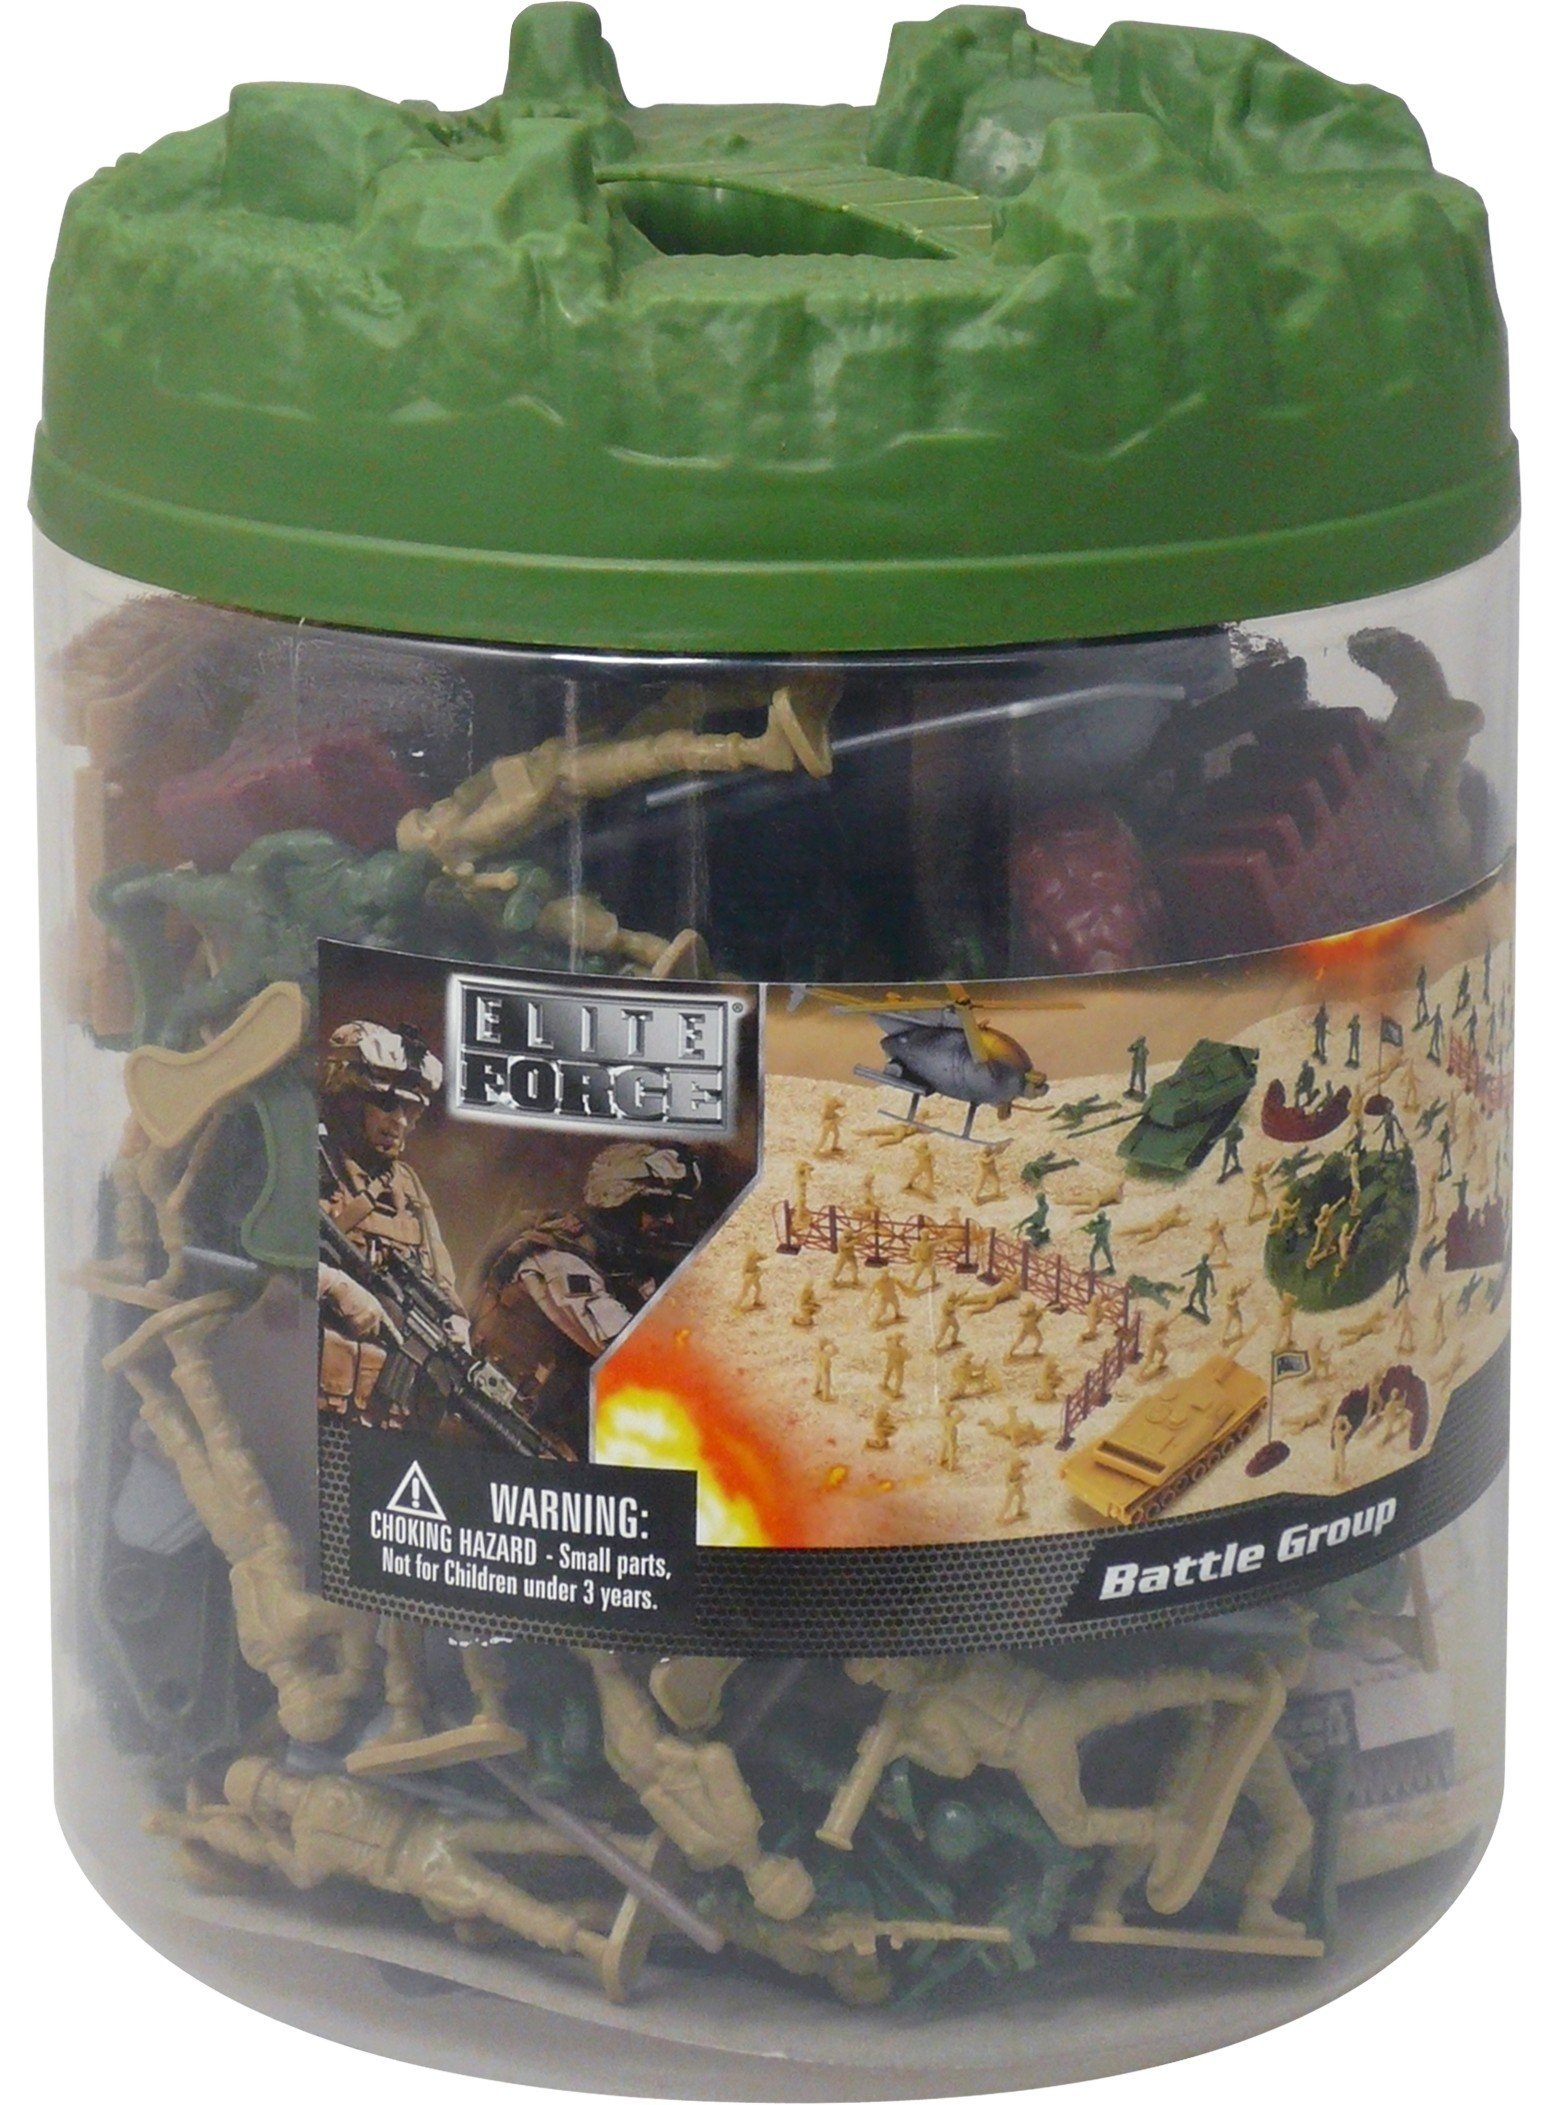 Elite Force Battle Group Army Men Play Bucket - 120 Piece Military Soldier Playset by Elite Force (Image #2)